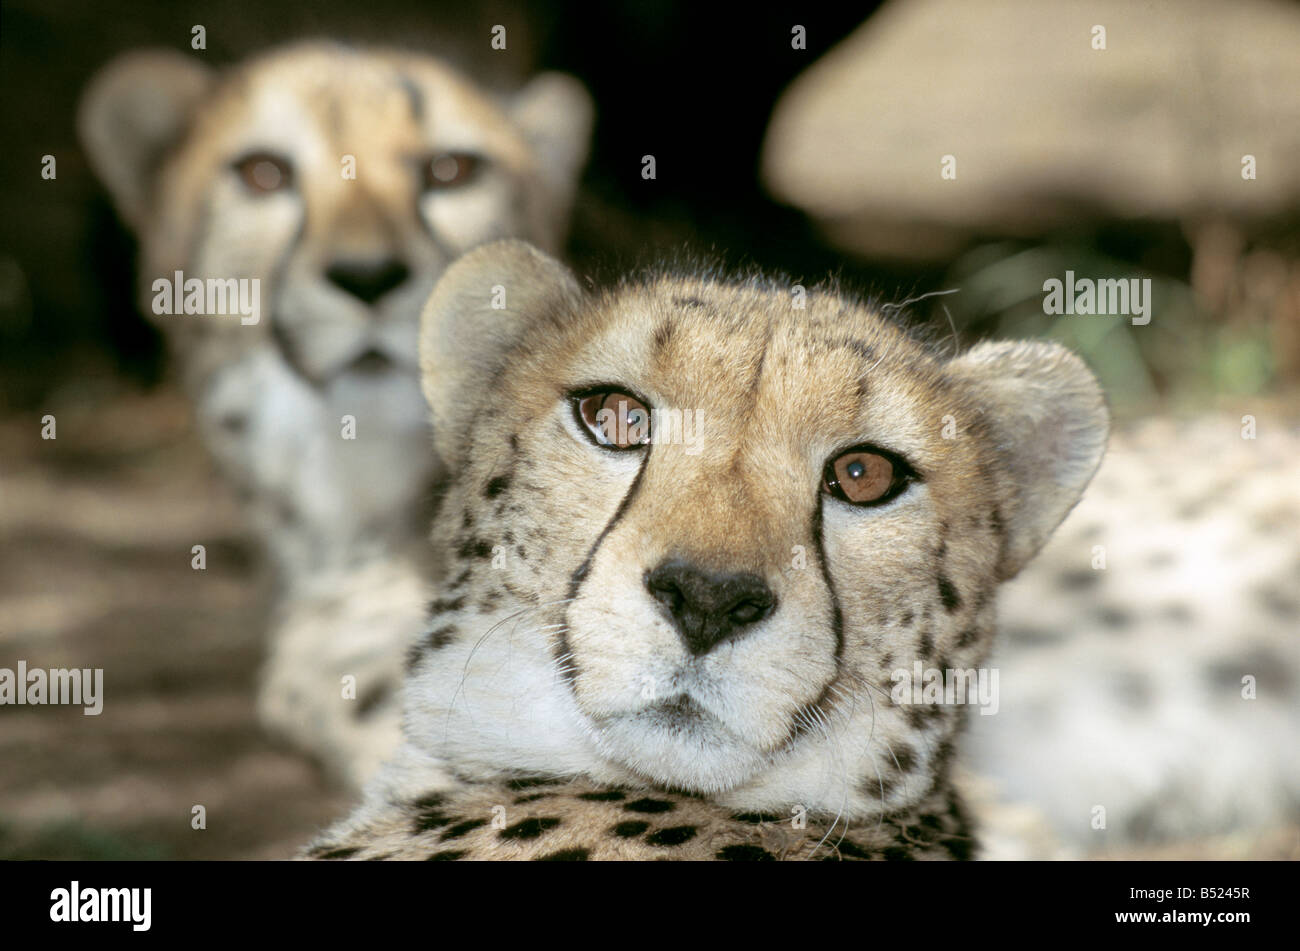 Pair of Cheetahs with the male in focus in the foreground - Stock Image